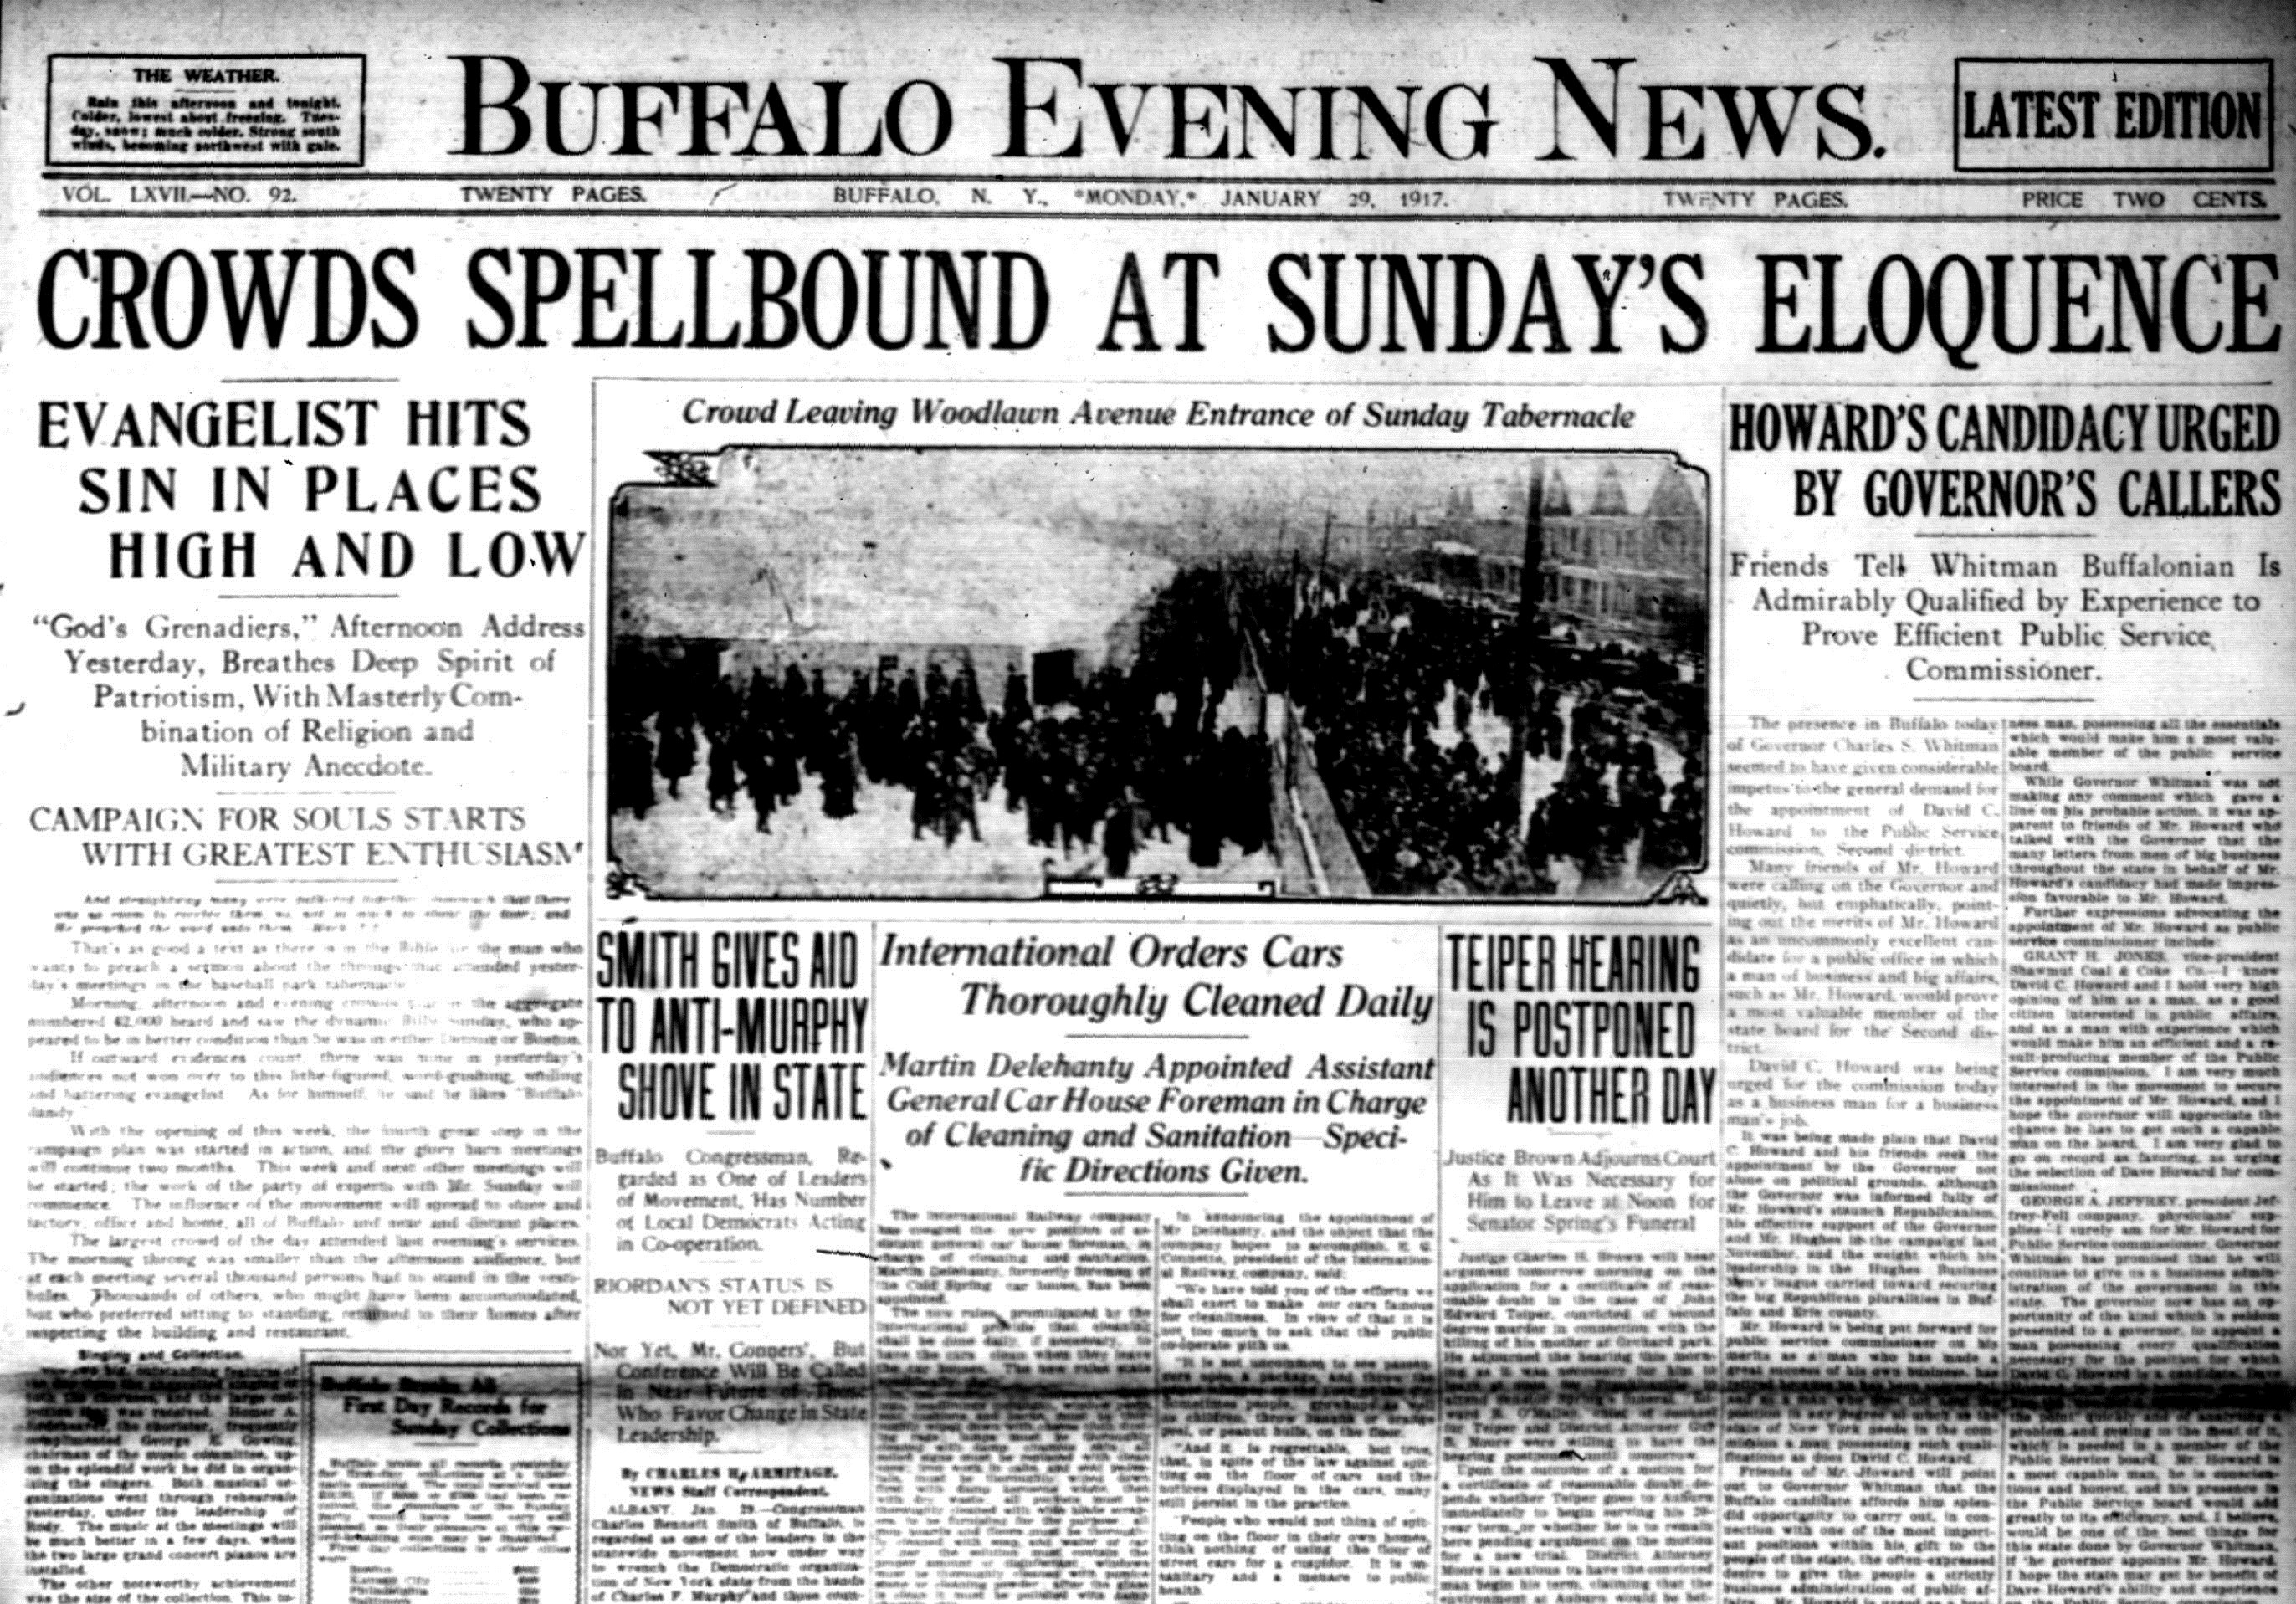 Front page, Jan. 29, 1917: 42,000 flock to famed evangelist's sermons